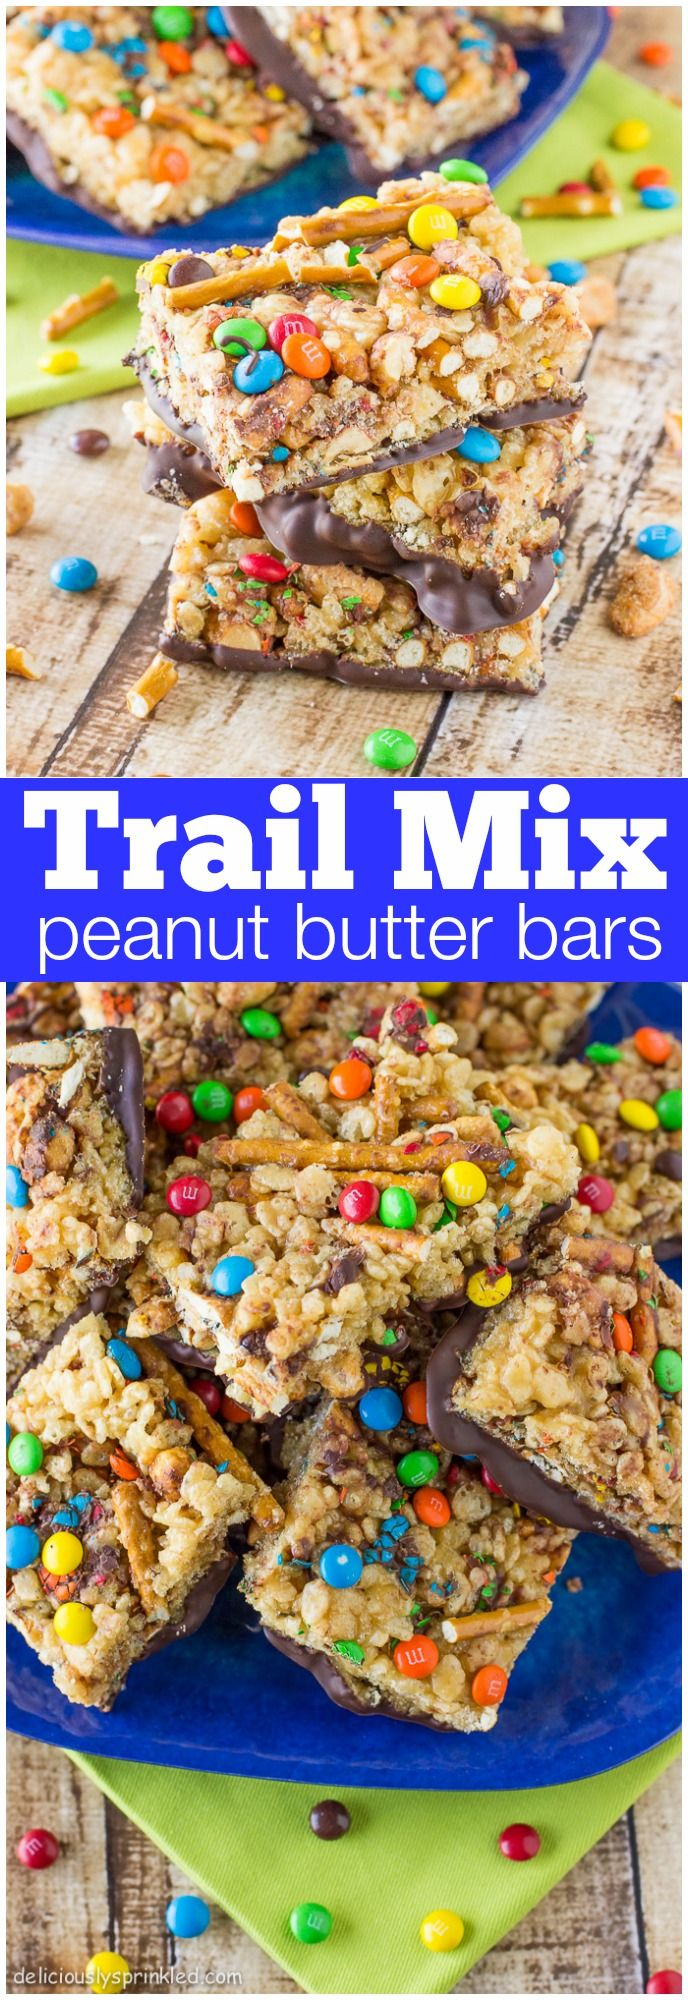 Trail Mix Peanut Butter Bars Recipe | deliciouslysprinkled.com